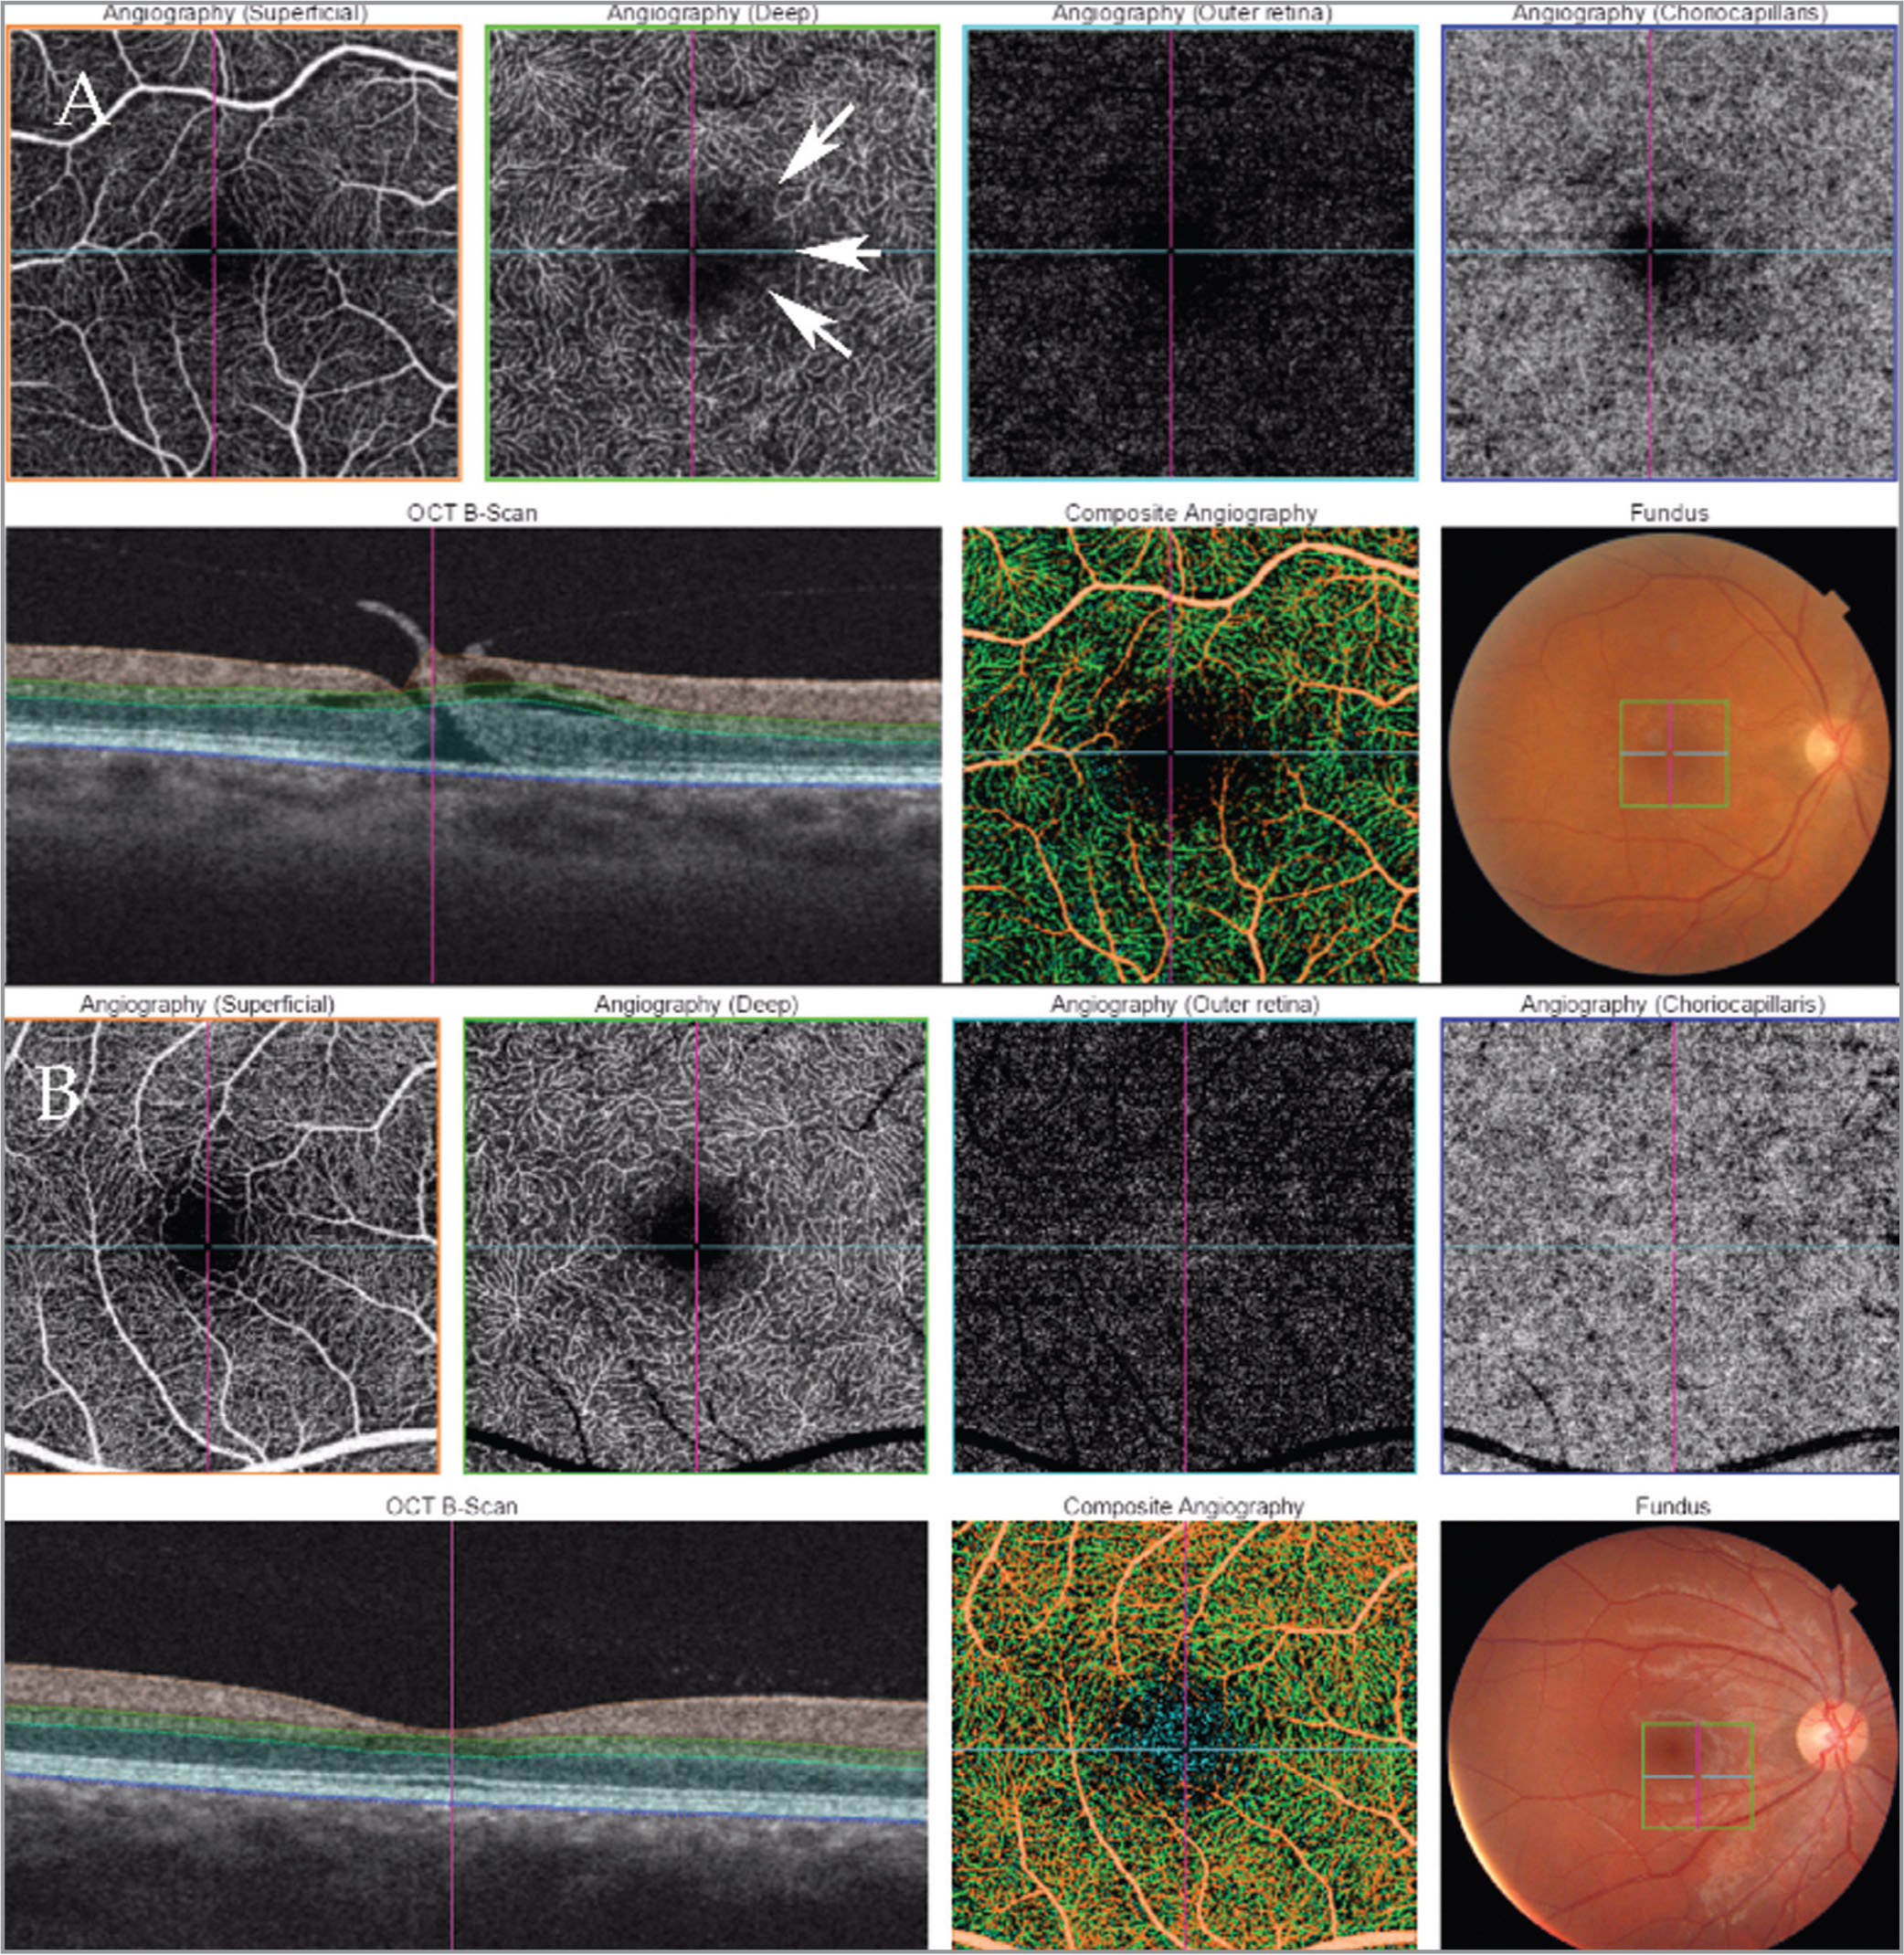 Swept-source optical coherence tomography angiography (SS-OCTA) comparison between a stage two macular hole (top) and a healthy eye (bottom). Orange frame: Retina at the level of superficial vessels. Green frame: Retina at the level of deep retinal vessels. Light blue frame: Retina at the level of retinal pigment epithelium. Dark blue frame: Level of choriocapillaris. (A) Full-thickness stage two macular hole. At the level of deep retina vessels, slight disarrangement at the margin of the foveal avascular zone is visible. This corresponds to cystoid spaces visible in SS-OCT. At the level of choriocapillaris, a hyporeflective circle is visible, corresponding to the maximum diameter of the macular hole. (B) Healthy macula.